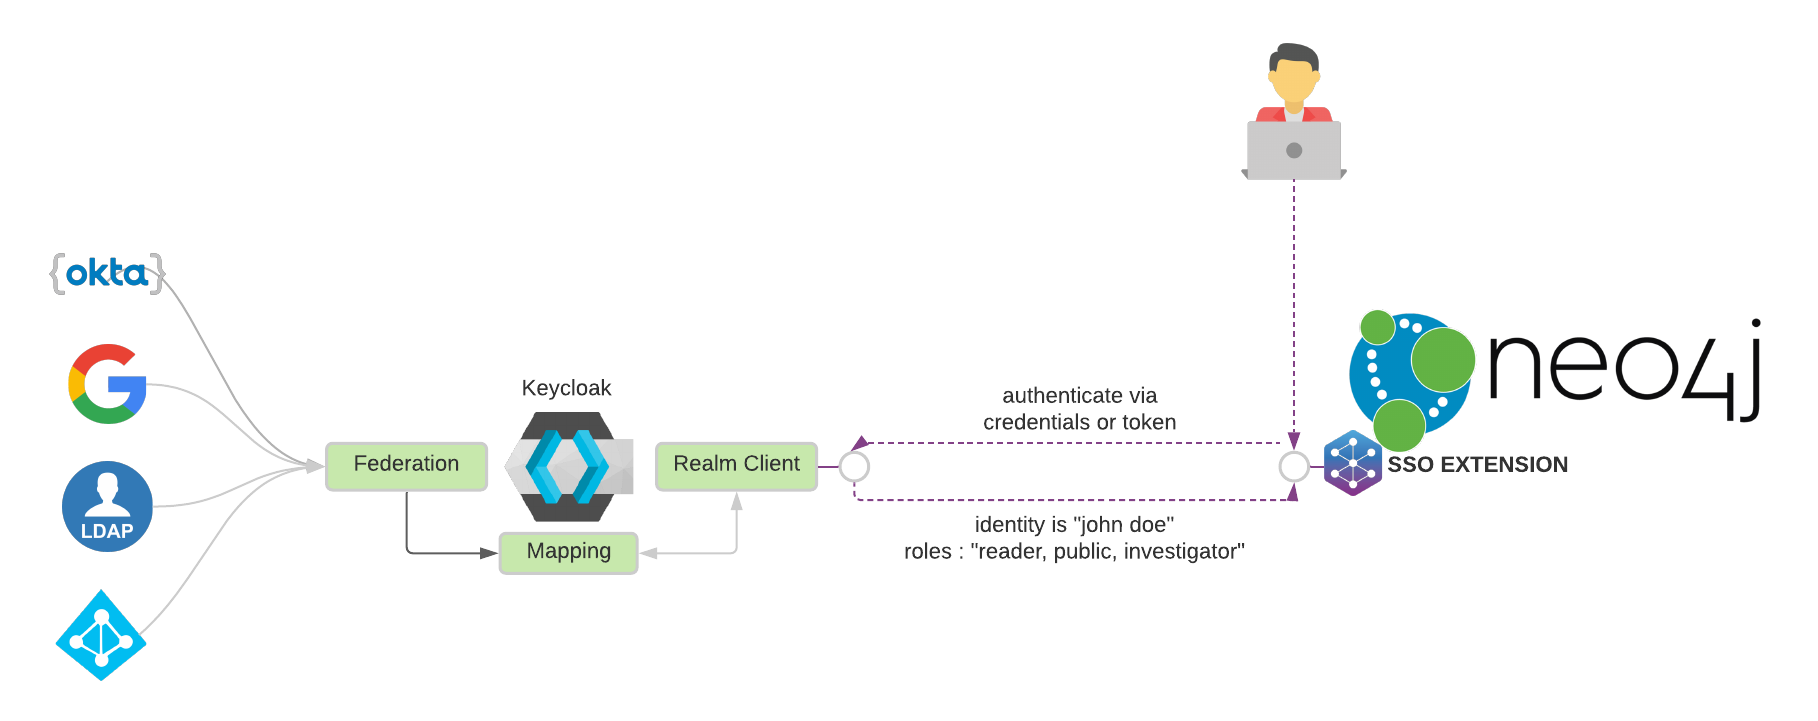 Bringing Single Sign-On to Neo4j with Keycloak